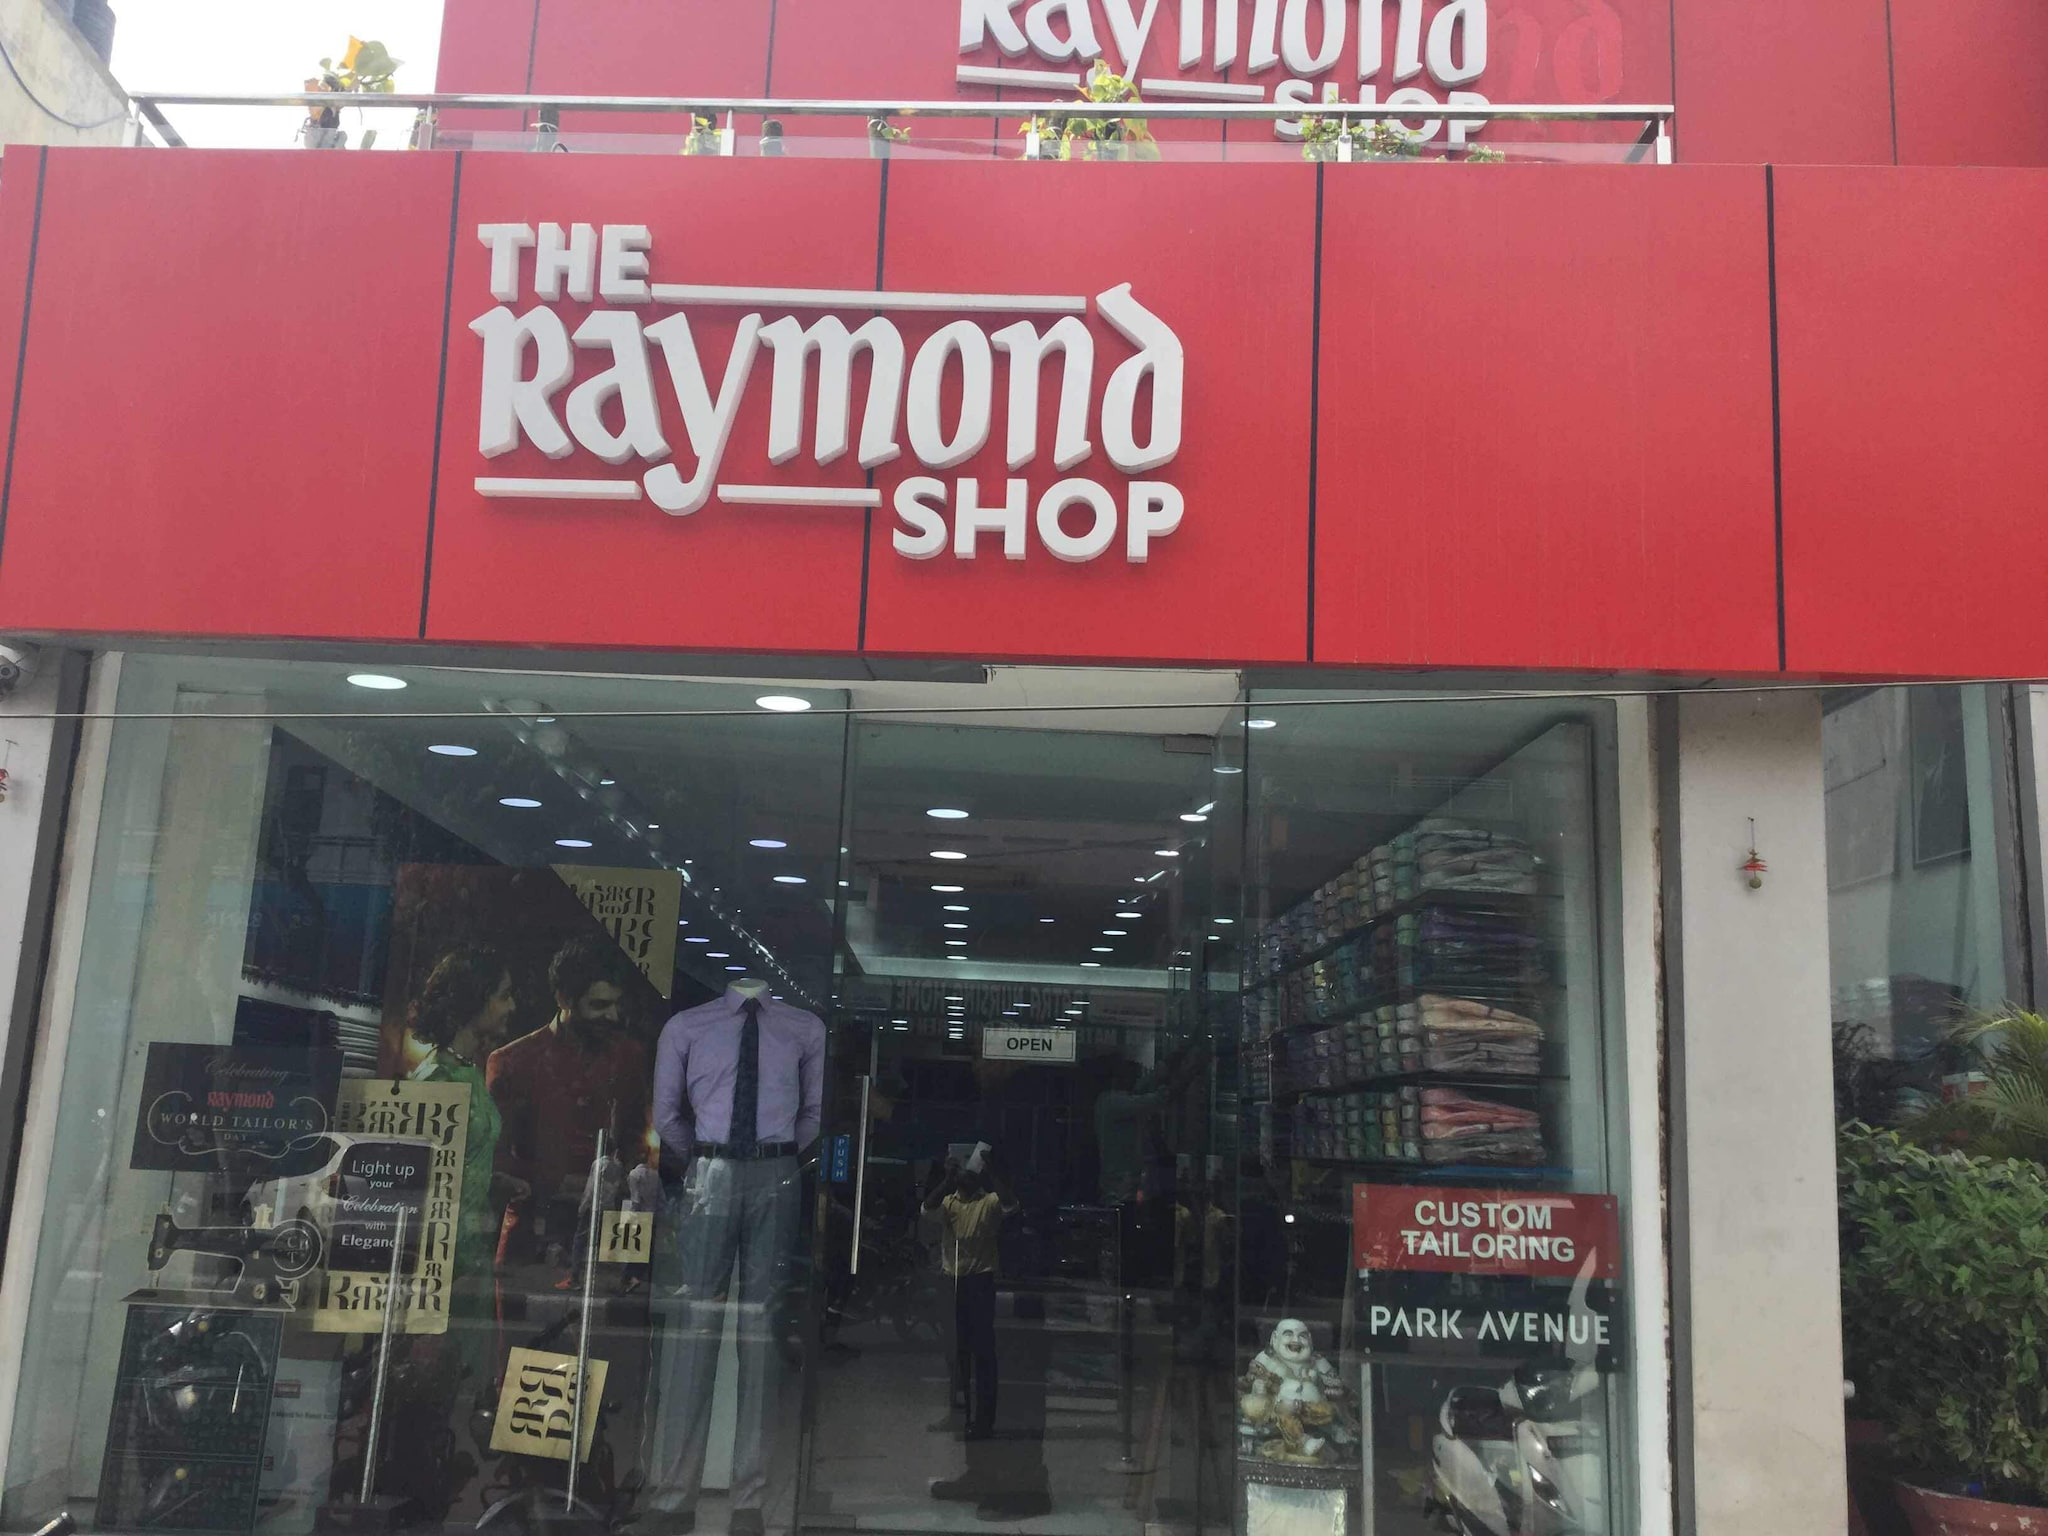 Top 100 Readymade Garment Shop in Delhi - Best Readymade Clothing